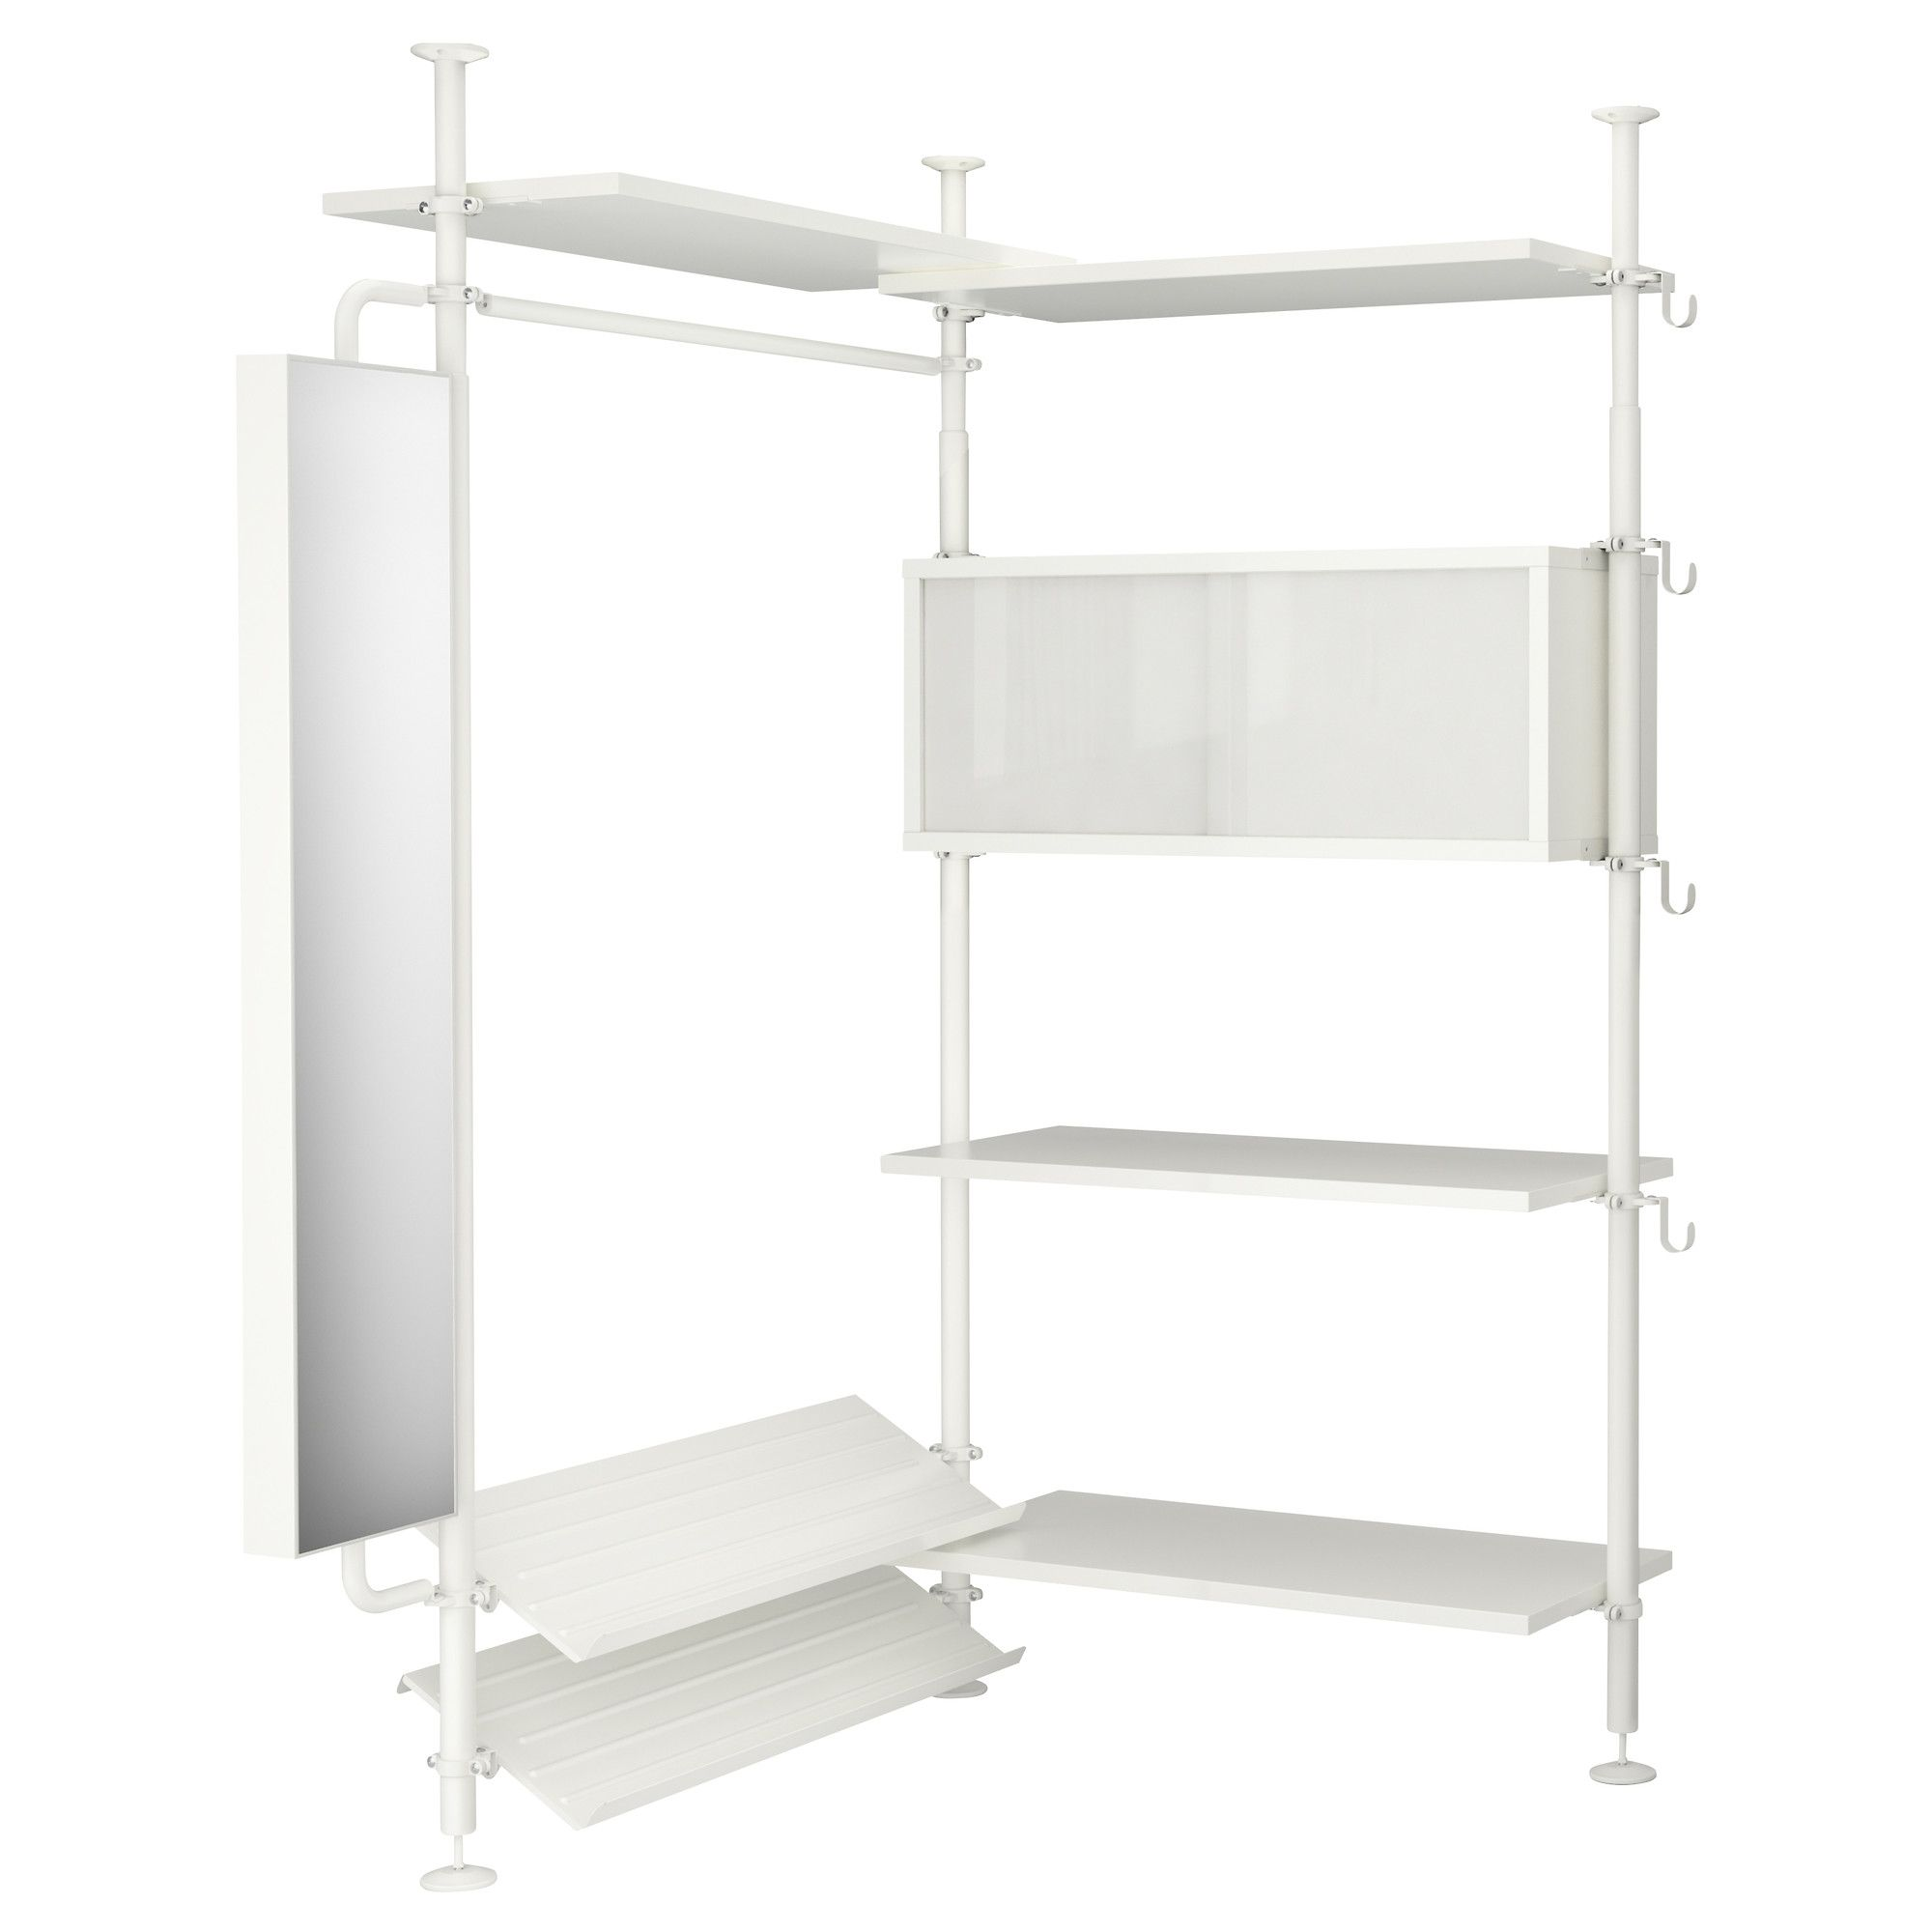 STOLMEN 2 sections - IKEA - this could be a game changer for my bedroom.